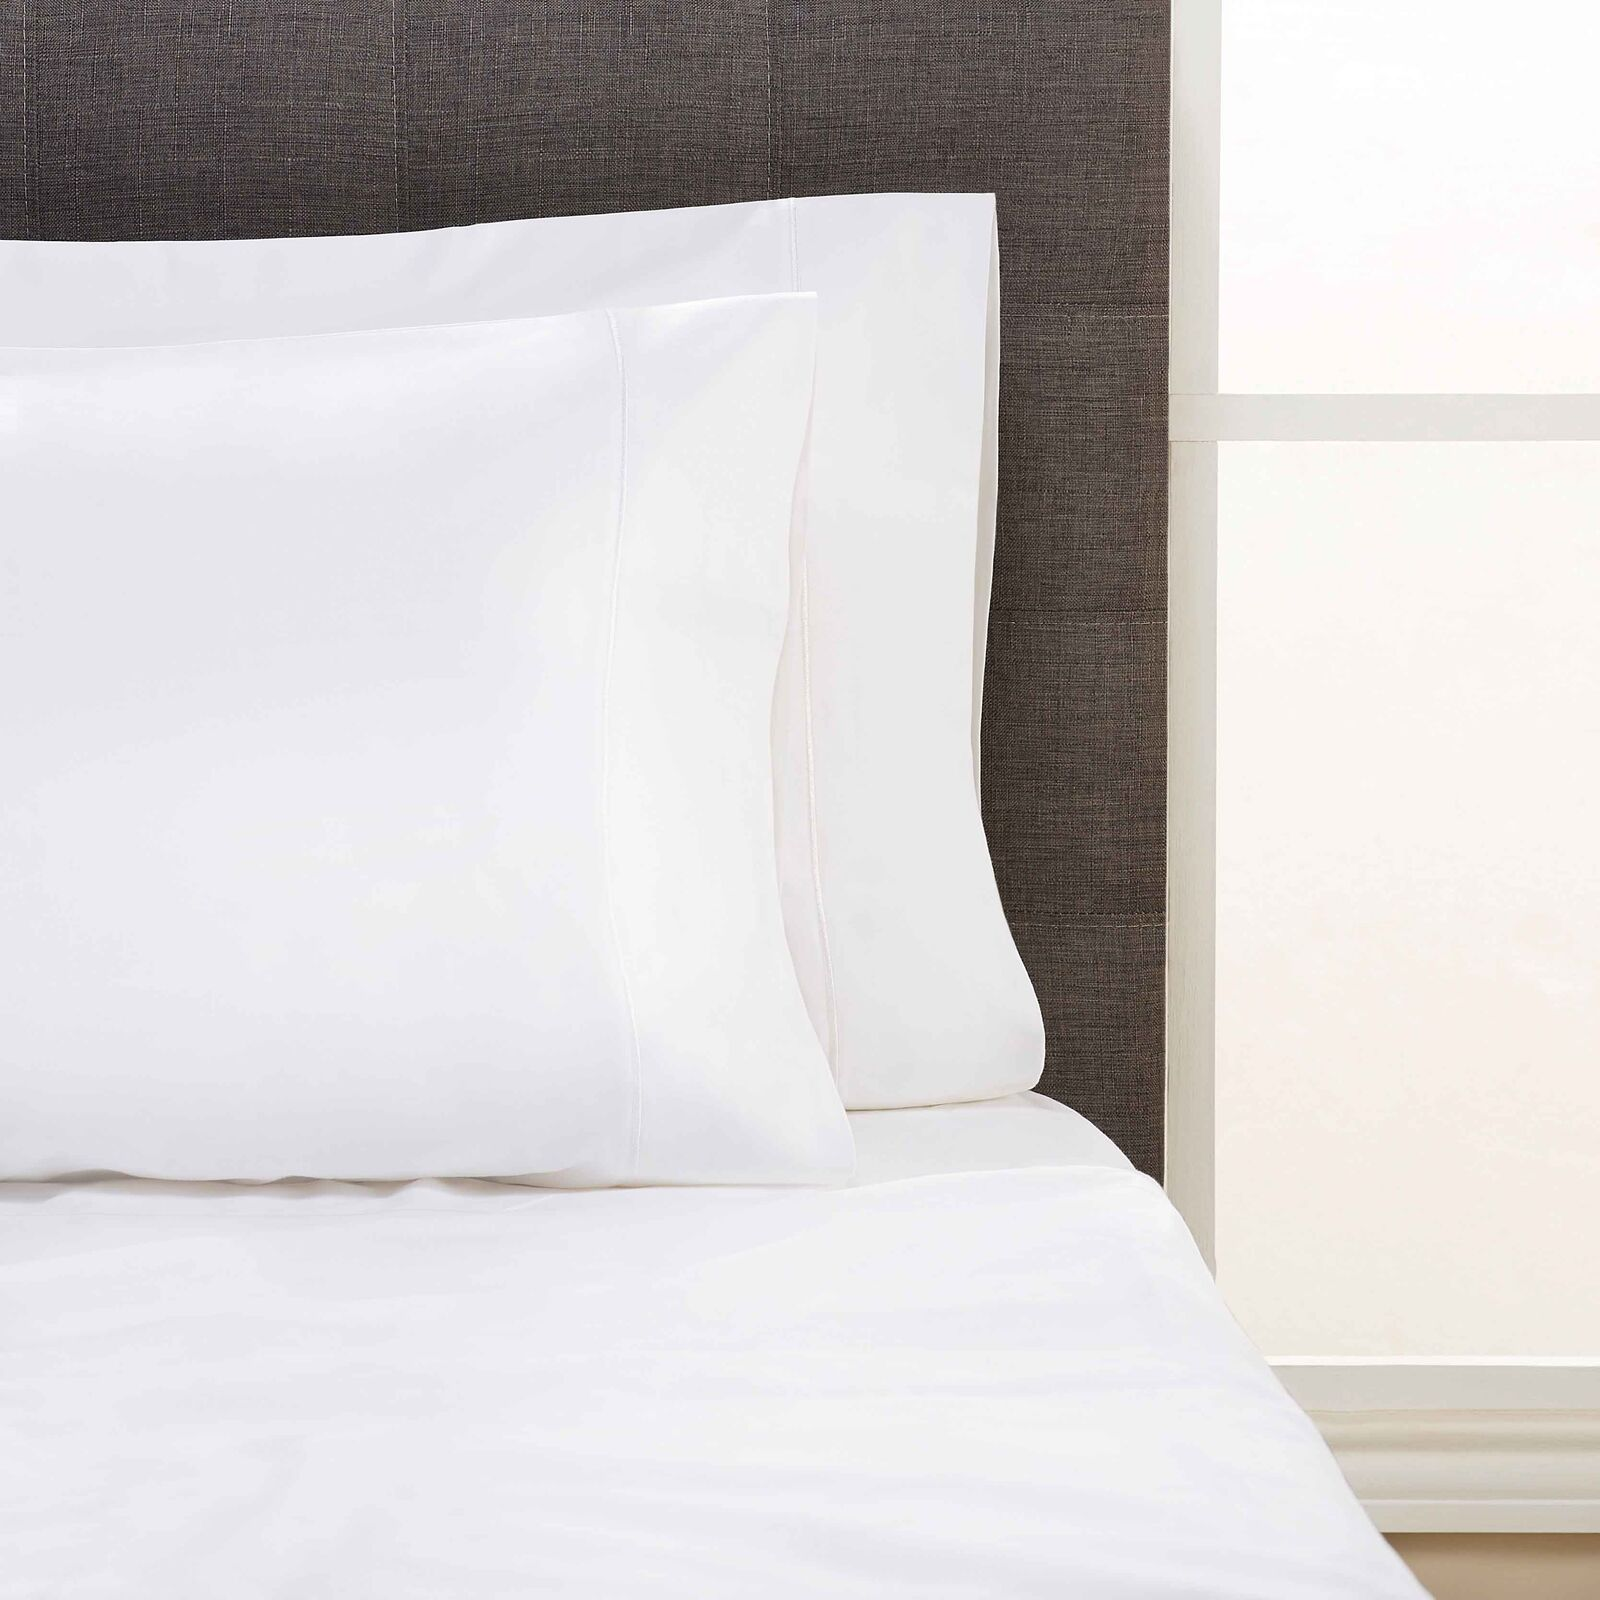 Egyptian Pillow Cases Cotton Bedding Smooth Lightweight Comfortable Soft Classic